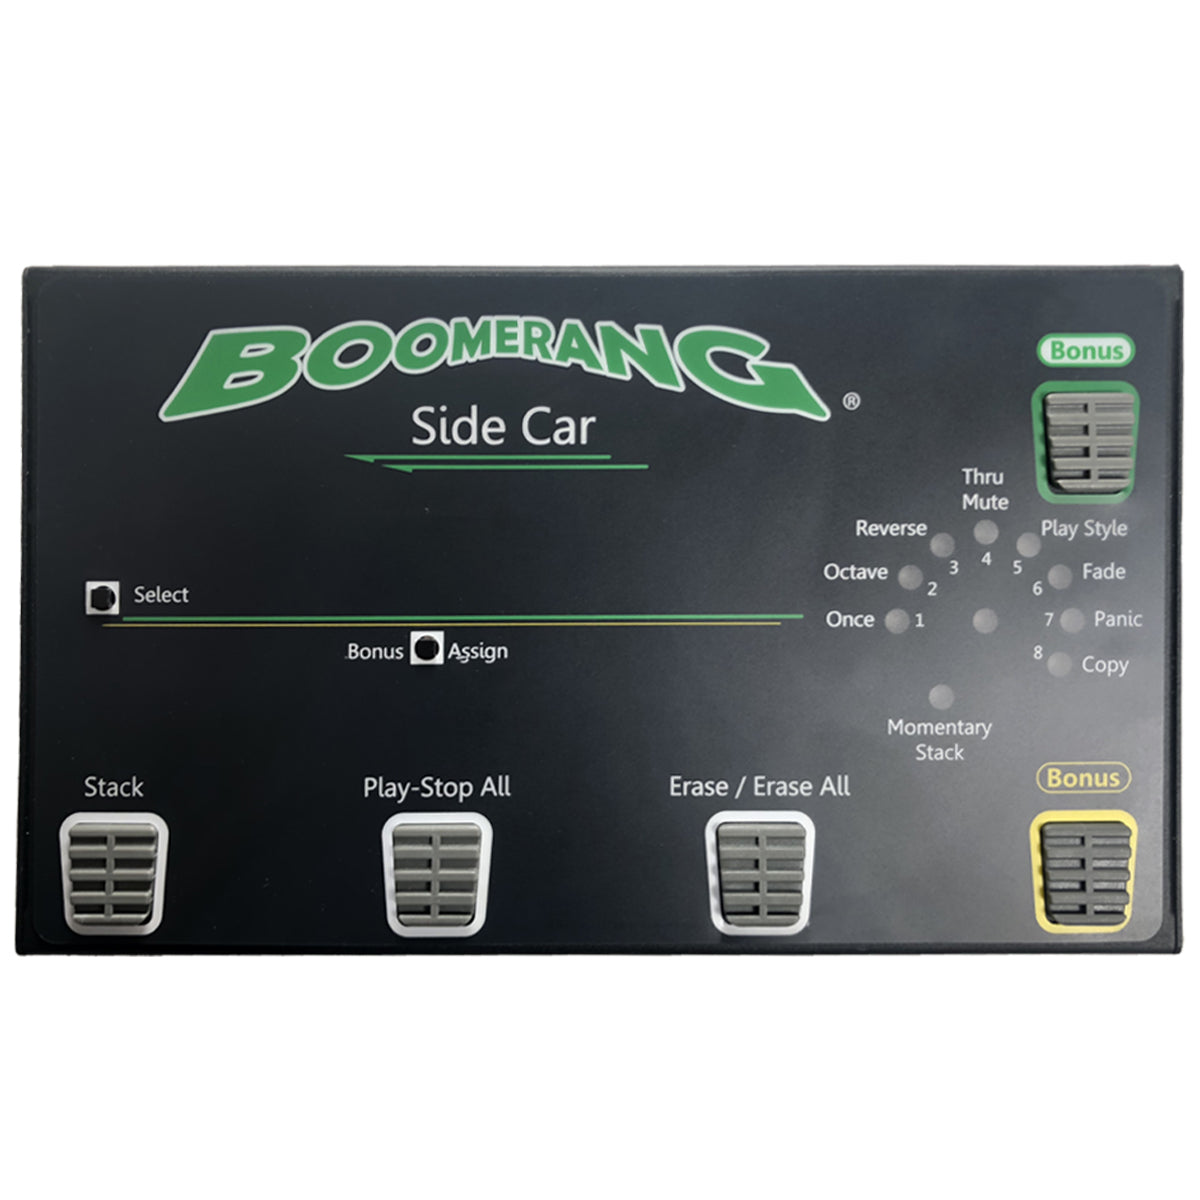 SIDE CAR- Unlock more features when you connect this to your Boomerang III